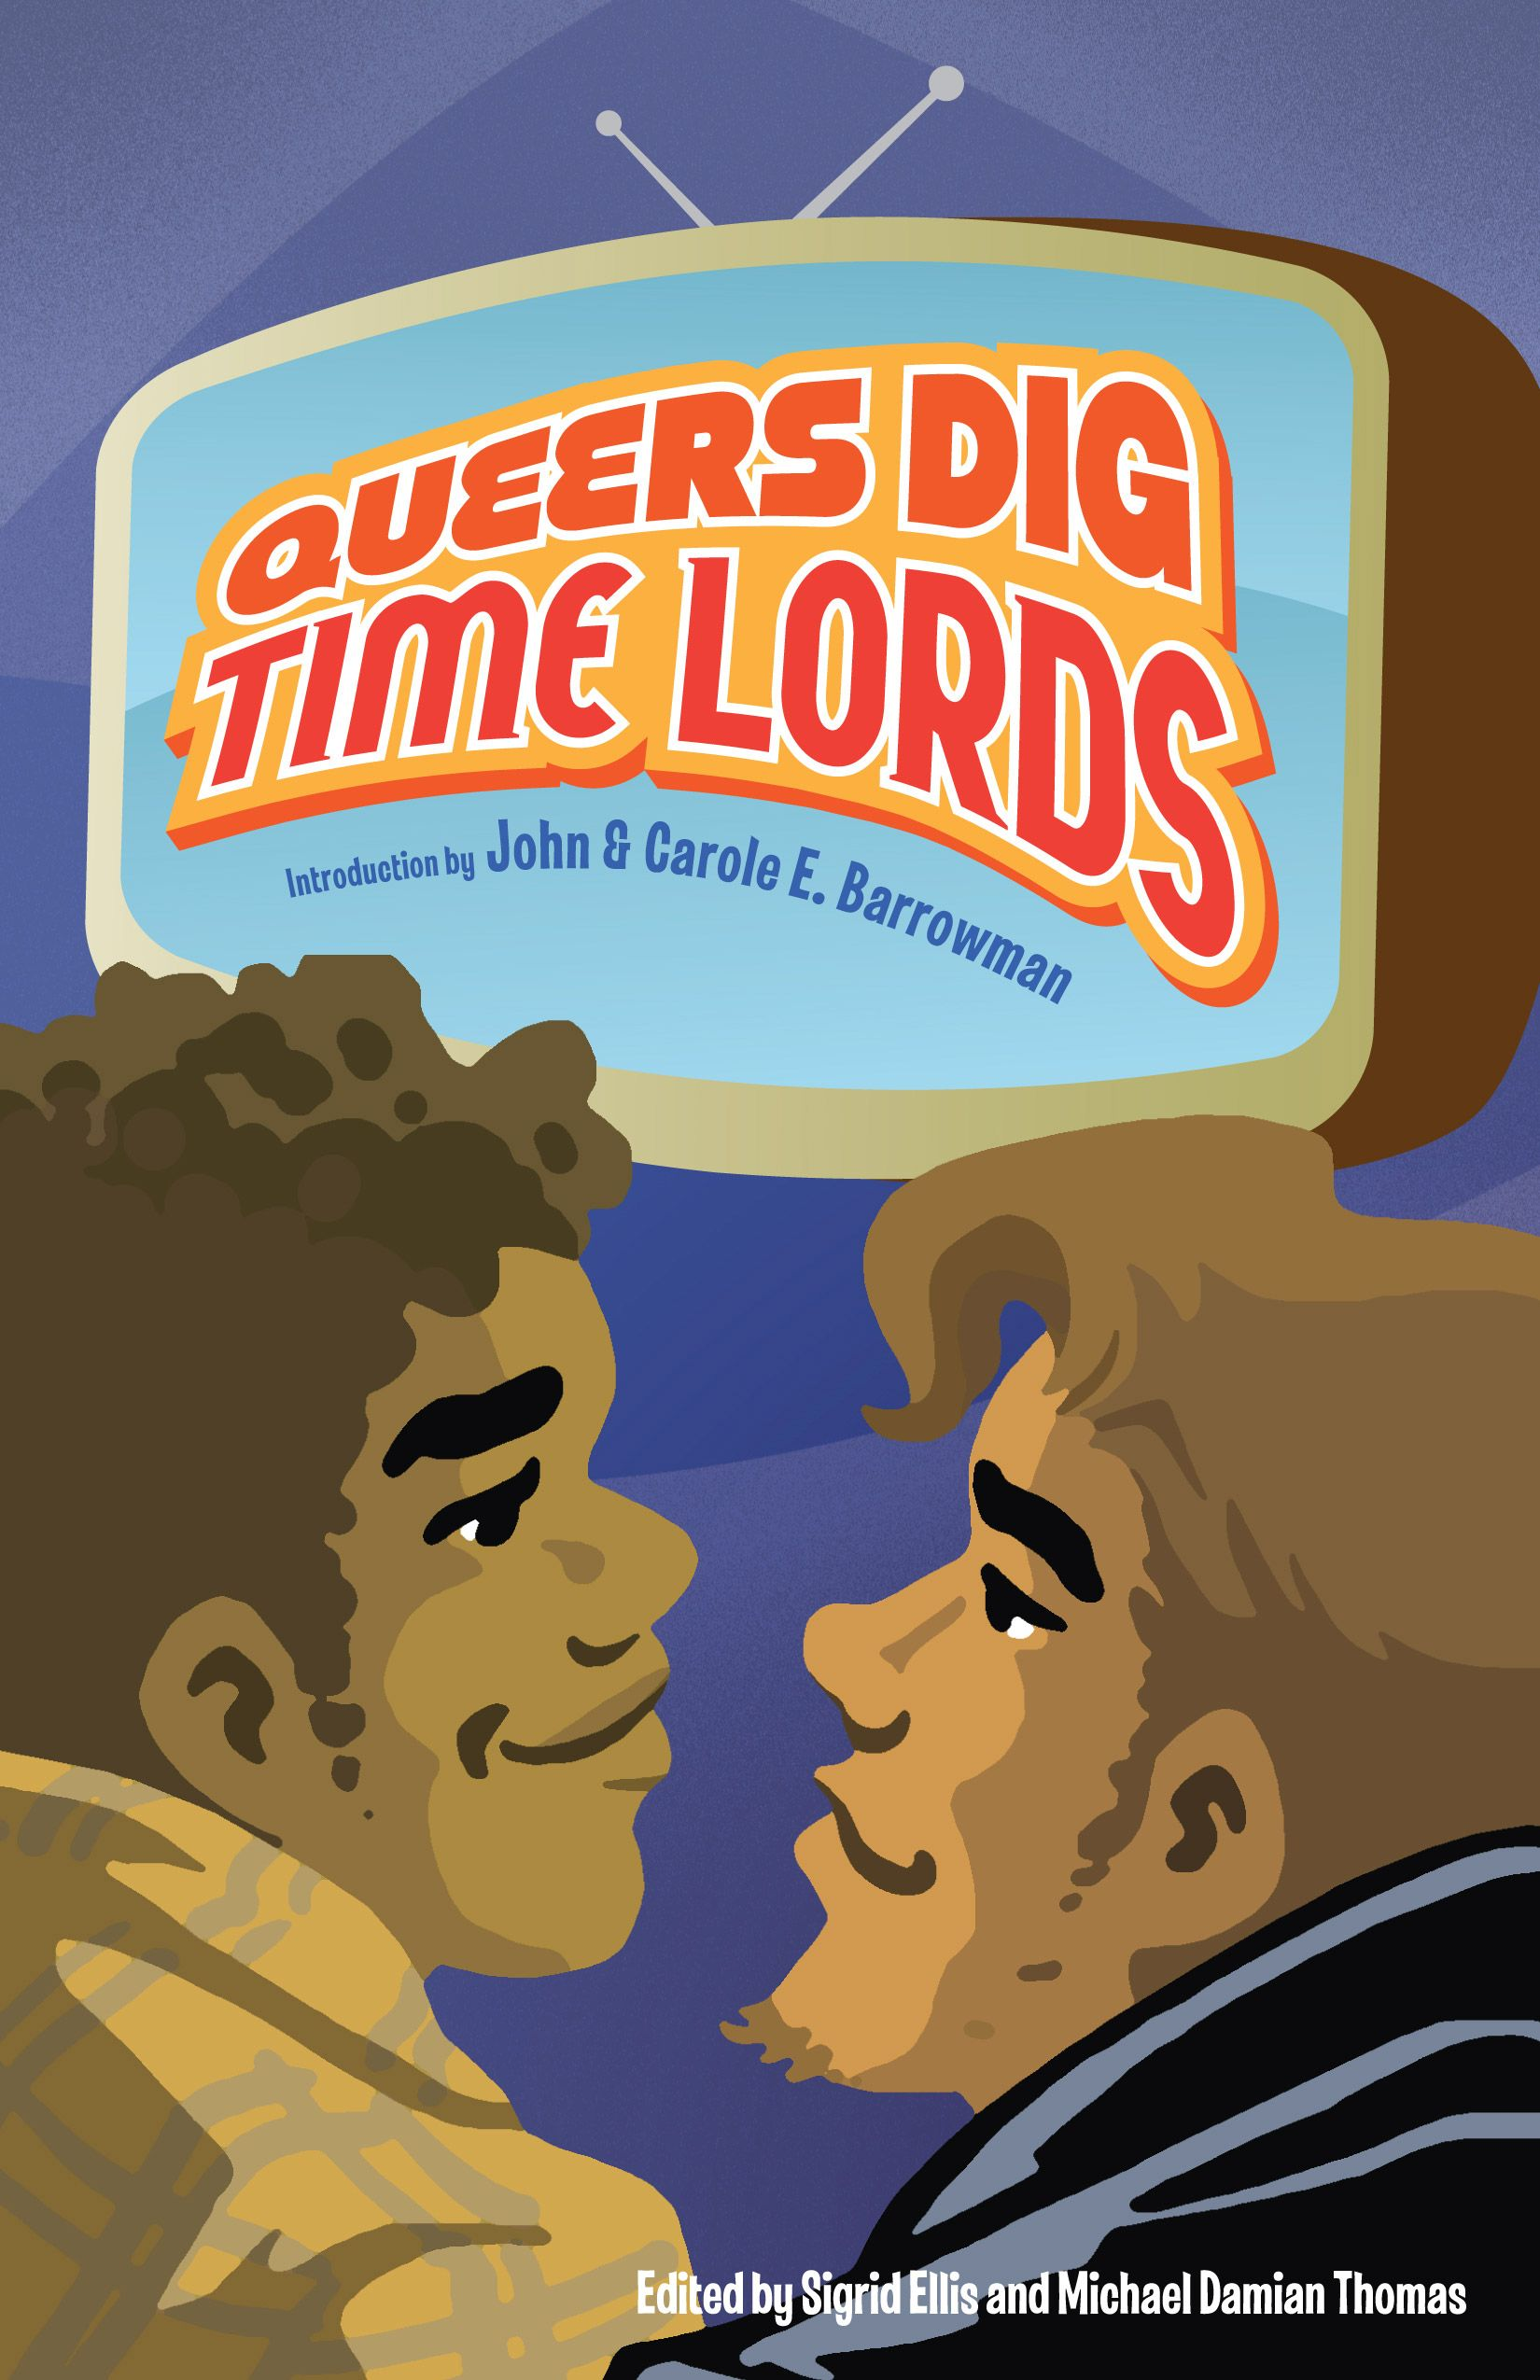 Queers Dig Time Lords. Mad Norwegian Press